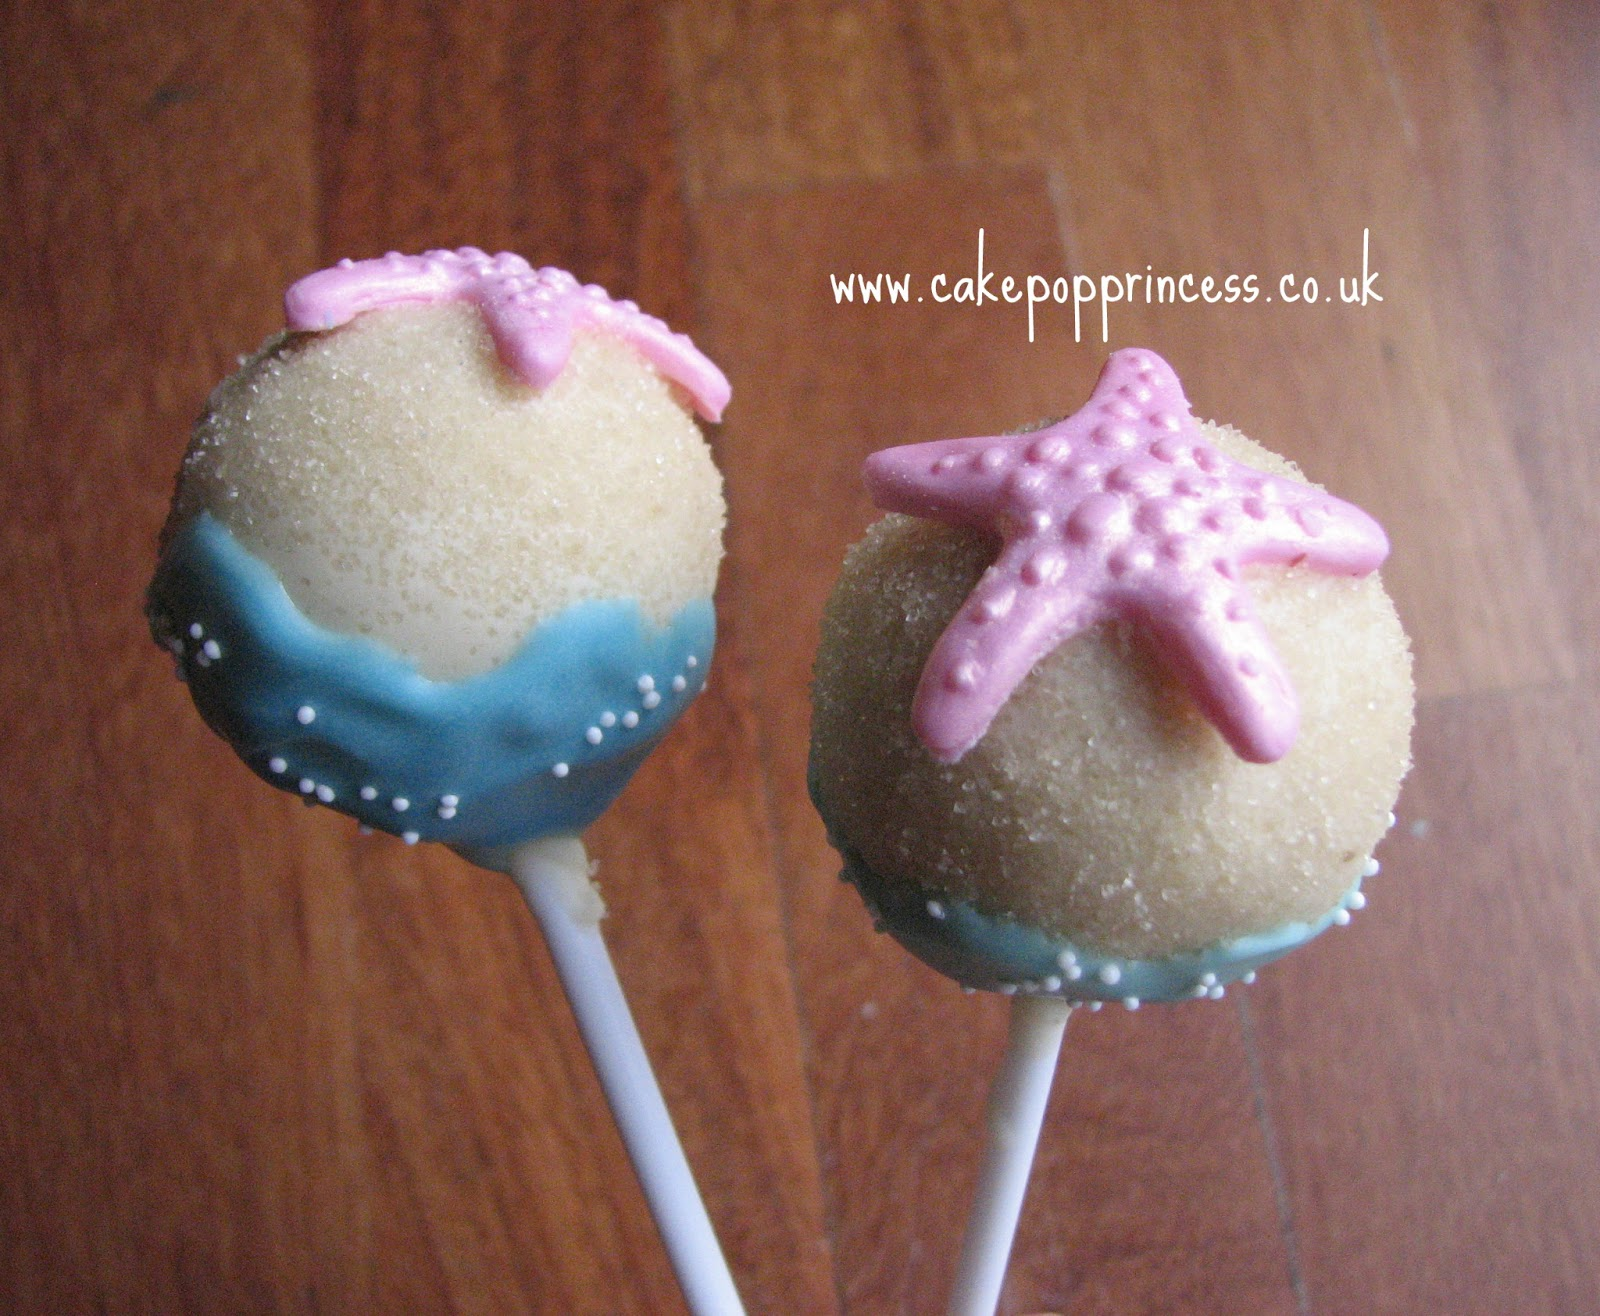 Cake Pop Princess Very Late Makes To Share Post 2